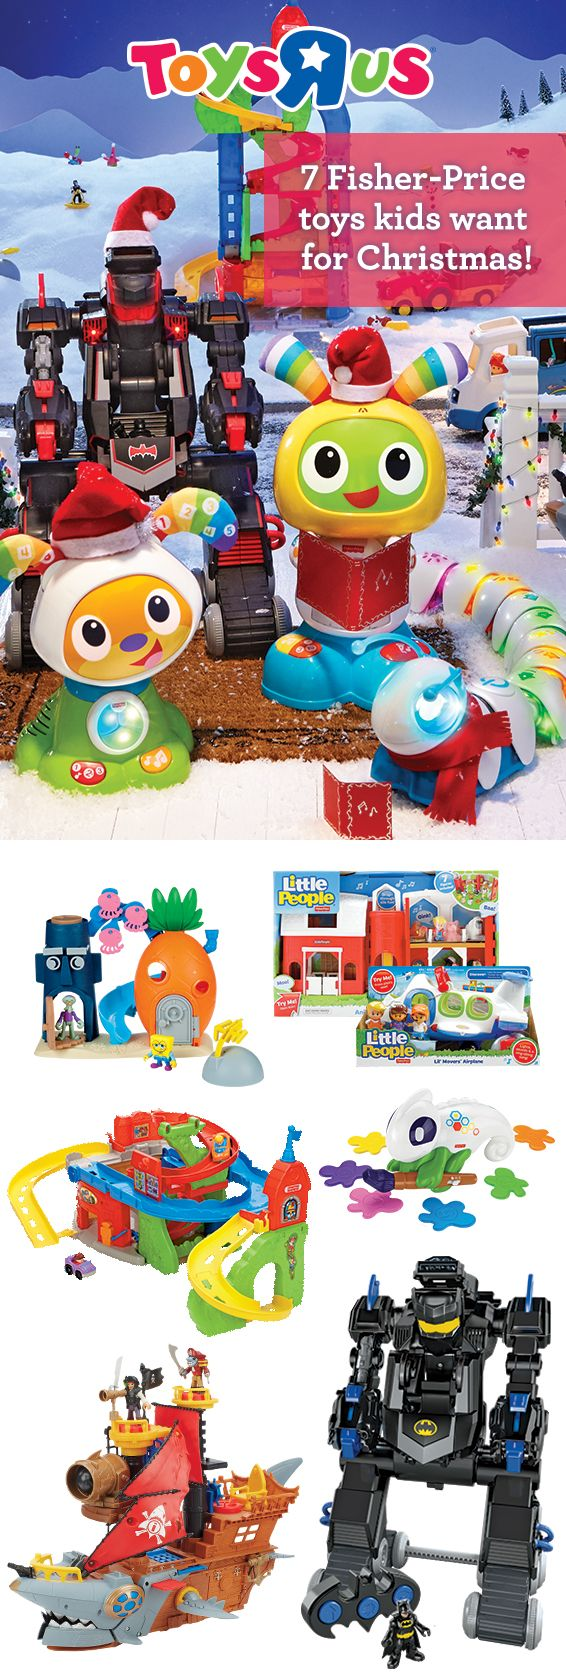 "A world of fun awaits! Toys""R""Us has the largest selection of Fisher-Price toys anywhere, so you're sure to find the perfect gift for little ones with growing imaginations. With the pretend-play adventures of Little People and Batman play sets, the skill-building excitement of Code-a-Pillar and Color Chameleon the sheer sing along fun of BeatBo, the joy of Fisher-Price toys grows with them!"